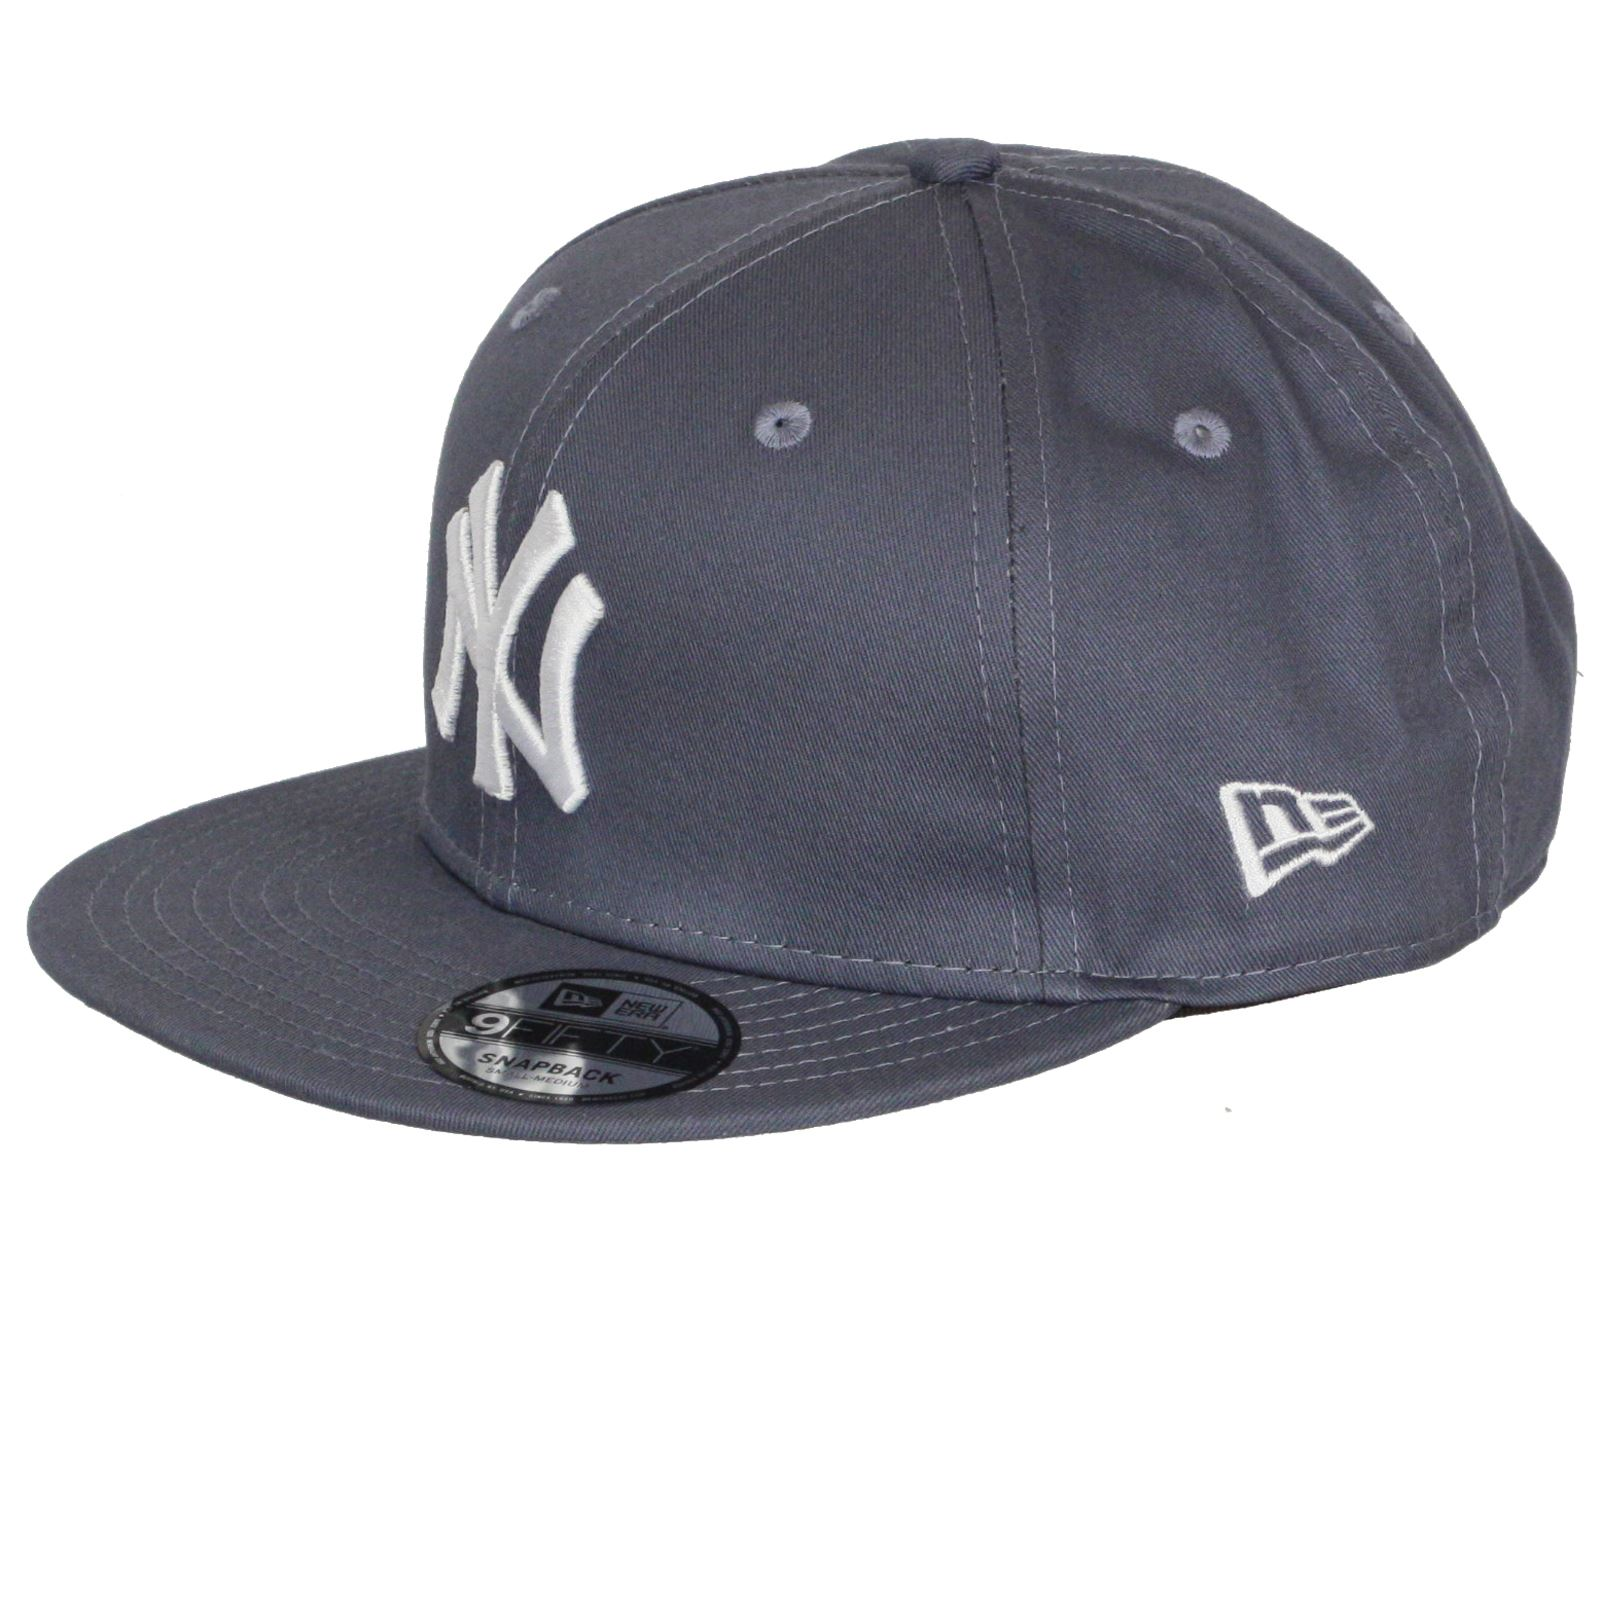 New-Era-League-Essential-9Fifty-Flatbill-Cap-New-York-Yankees-grey thumbnail 5